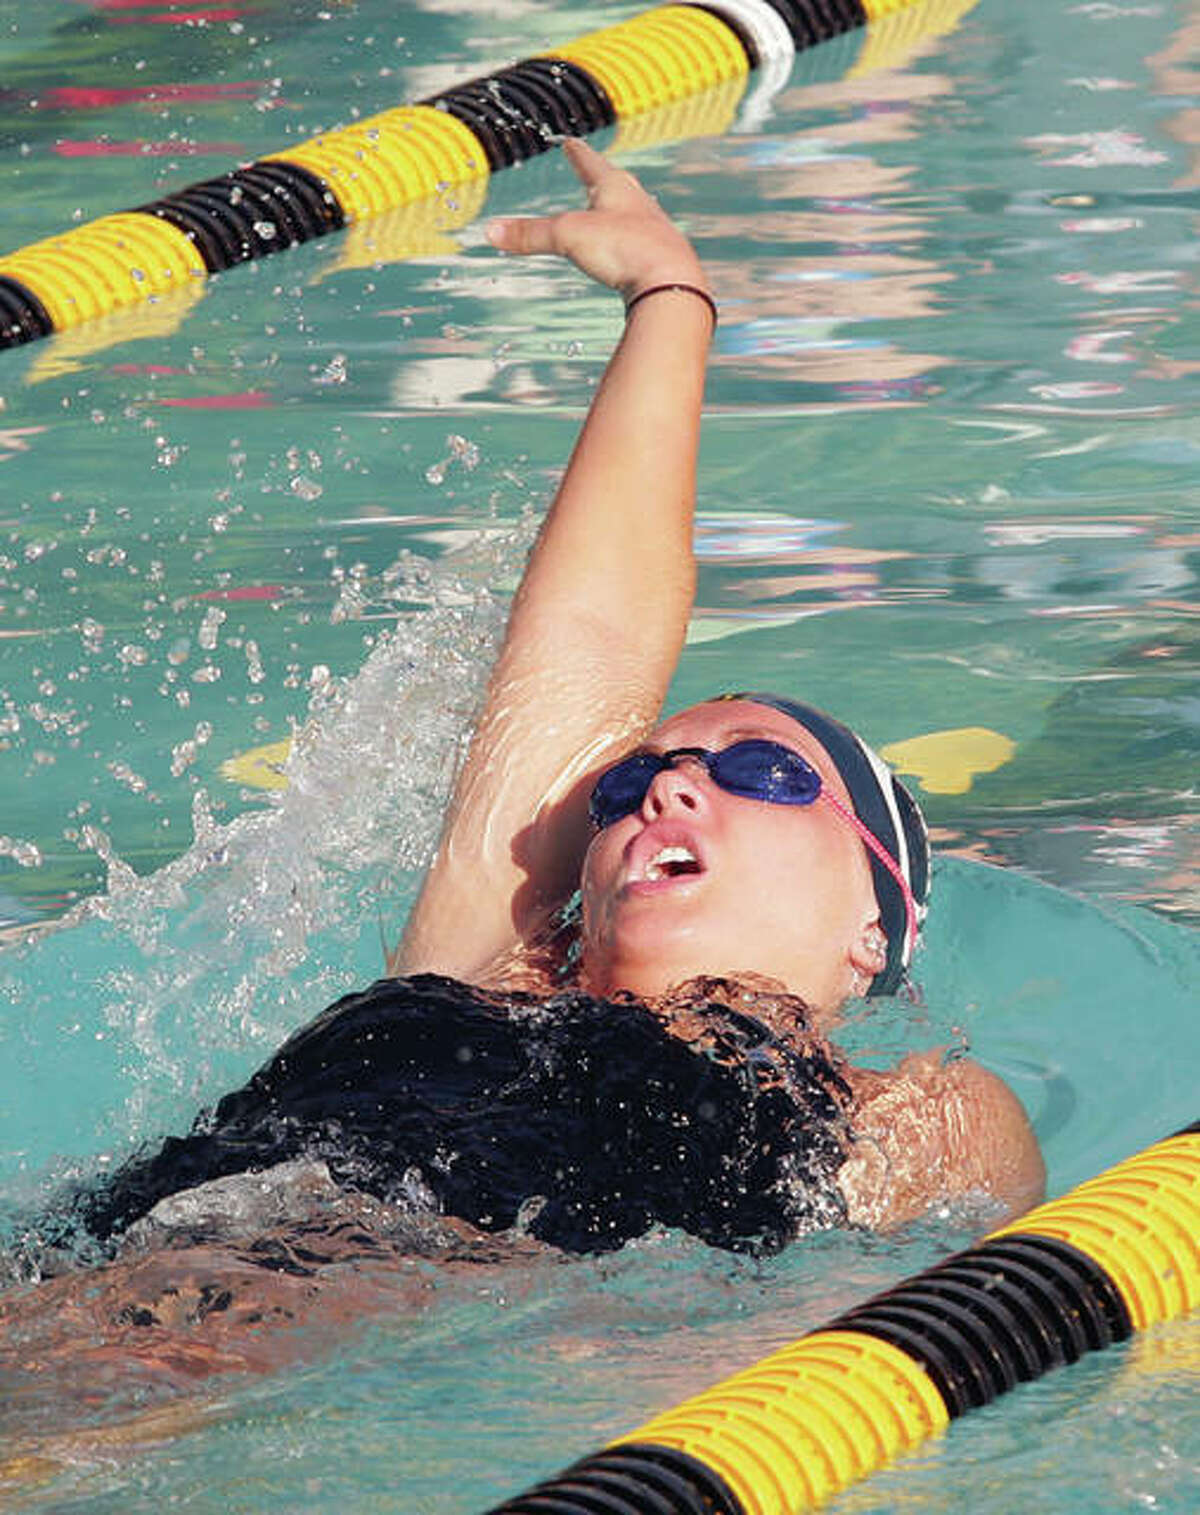 Lindsey Bruce of Alton High is the No. 4 seed in the 100-yard backstroke and the No. 3 seed in the 100 butterfly heading into Saturday's IHSA Sectional Meet in Edwardsville.